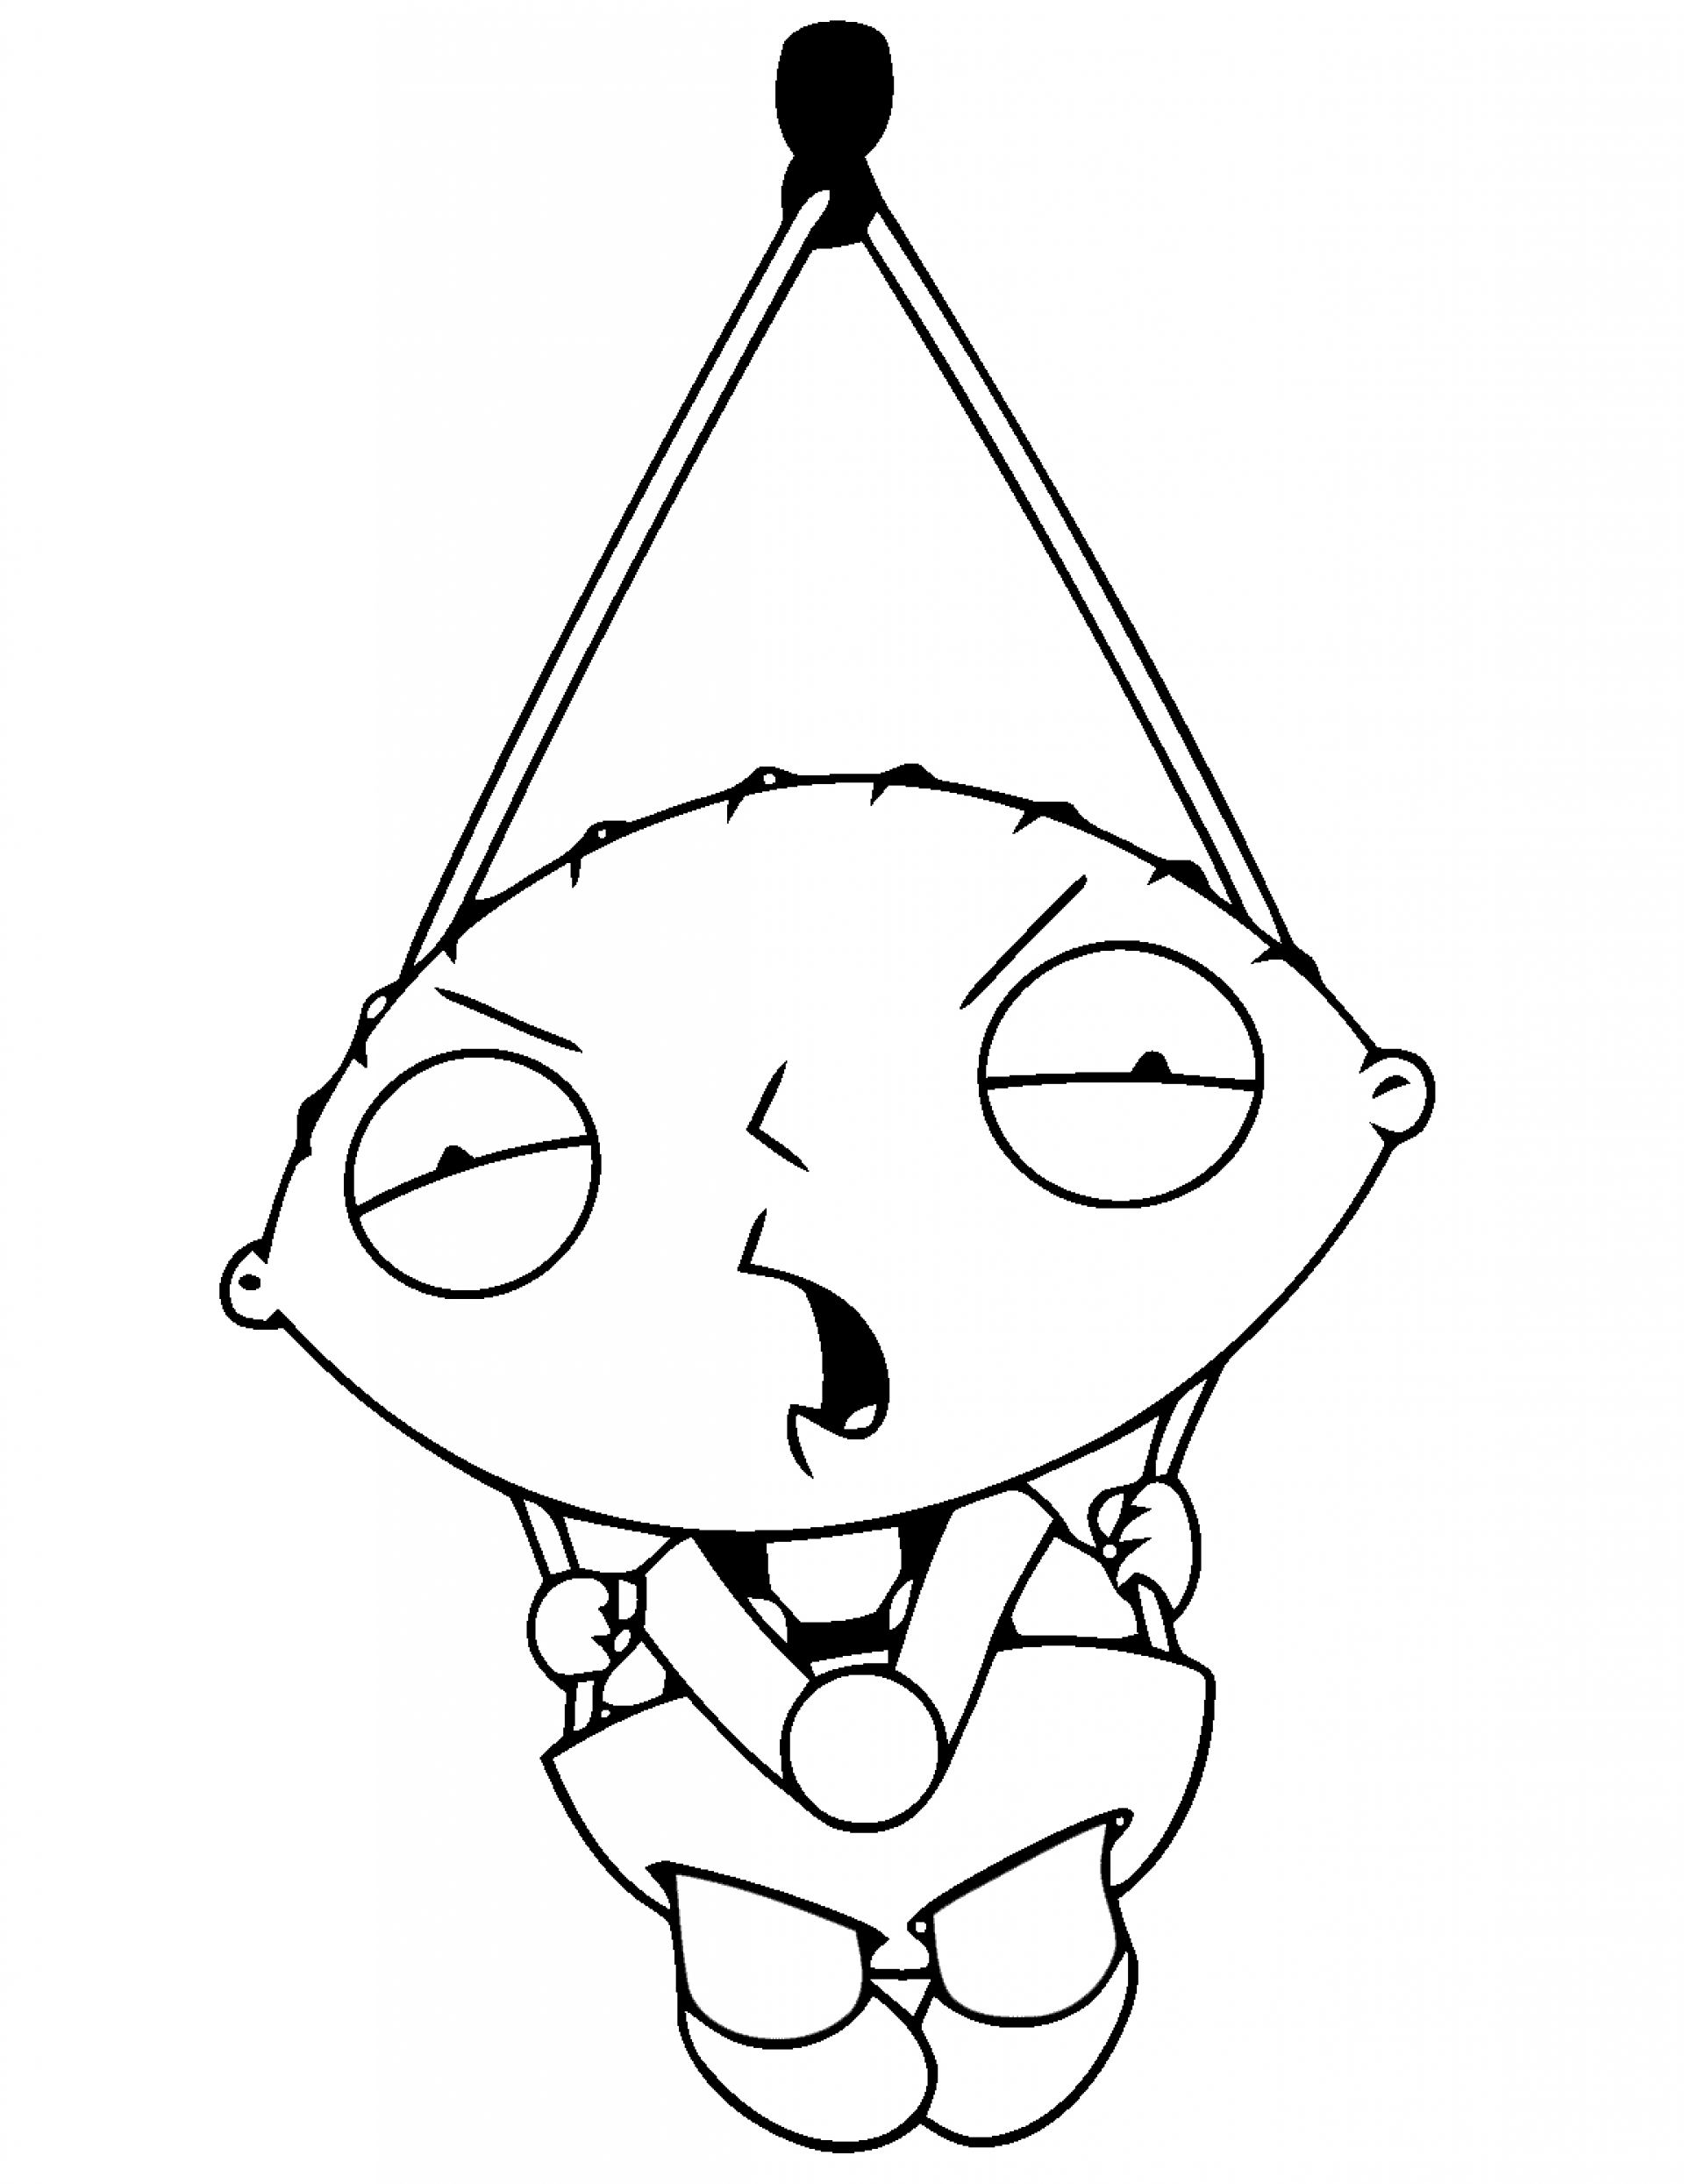 Cartoon network coloring pages download and print for free